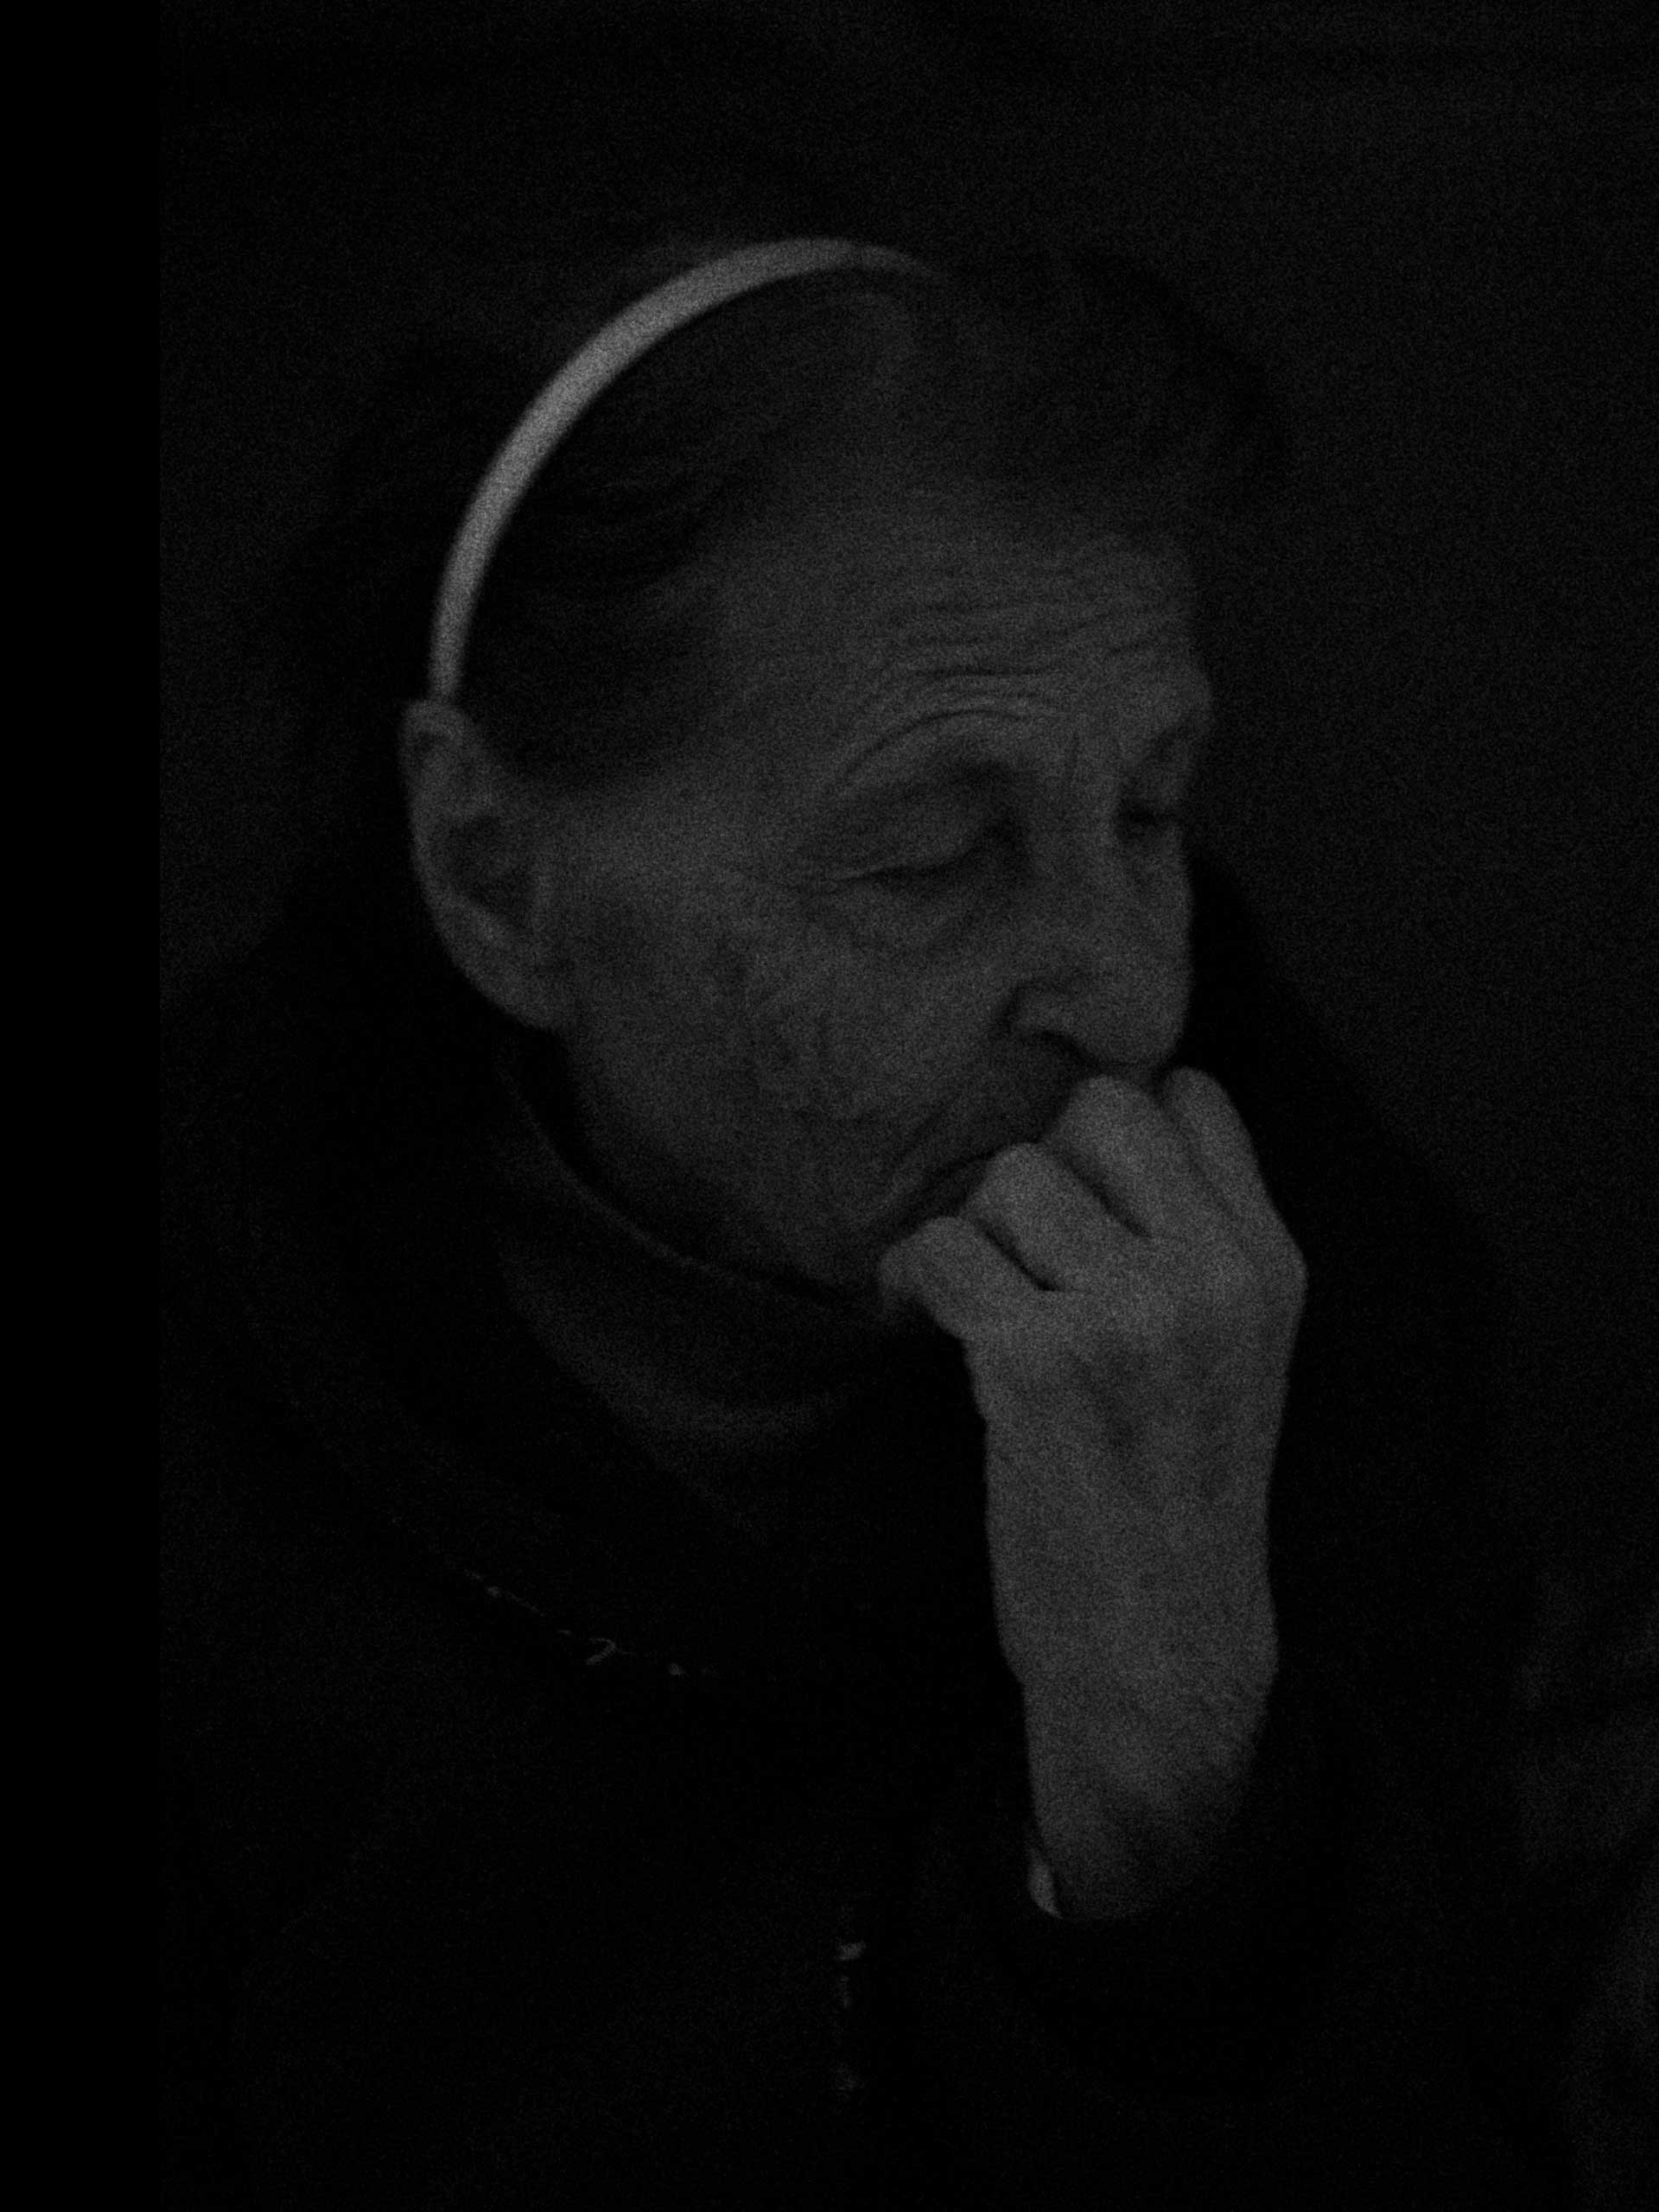 A portrait of Valentina is taken as we listened to shelling close to the shelter. The noise was actually the aftershock of a Tochka-U missile hitting a chemical plant some kilometers away sending a shockwave across much of the area. Donetsk, Kievski District, Ukraine. Oct. 20, 2014.